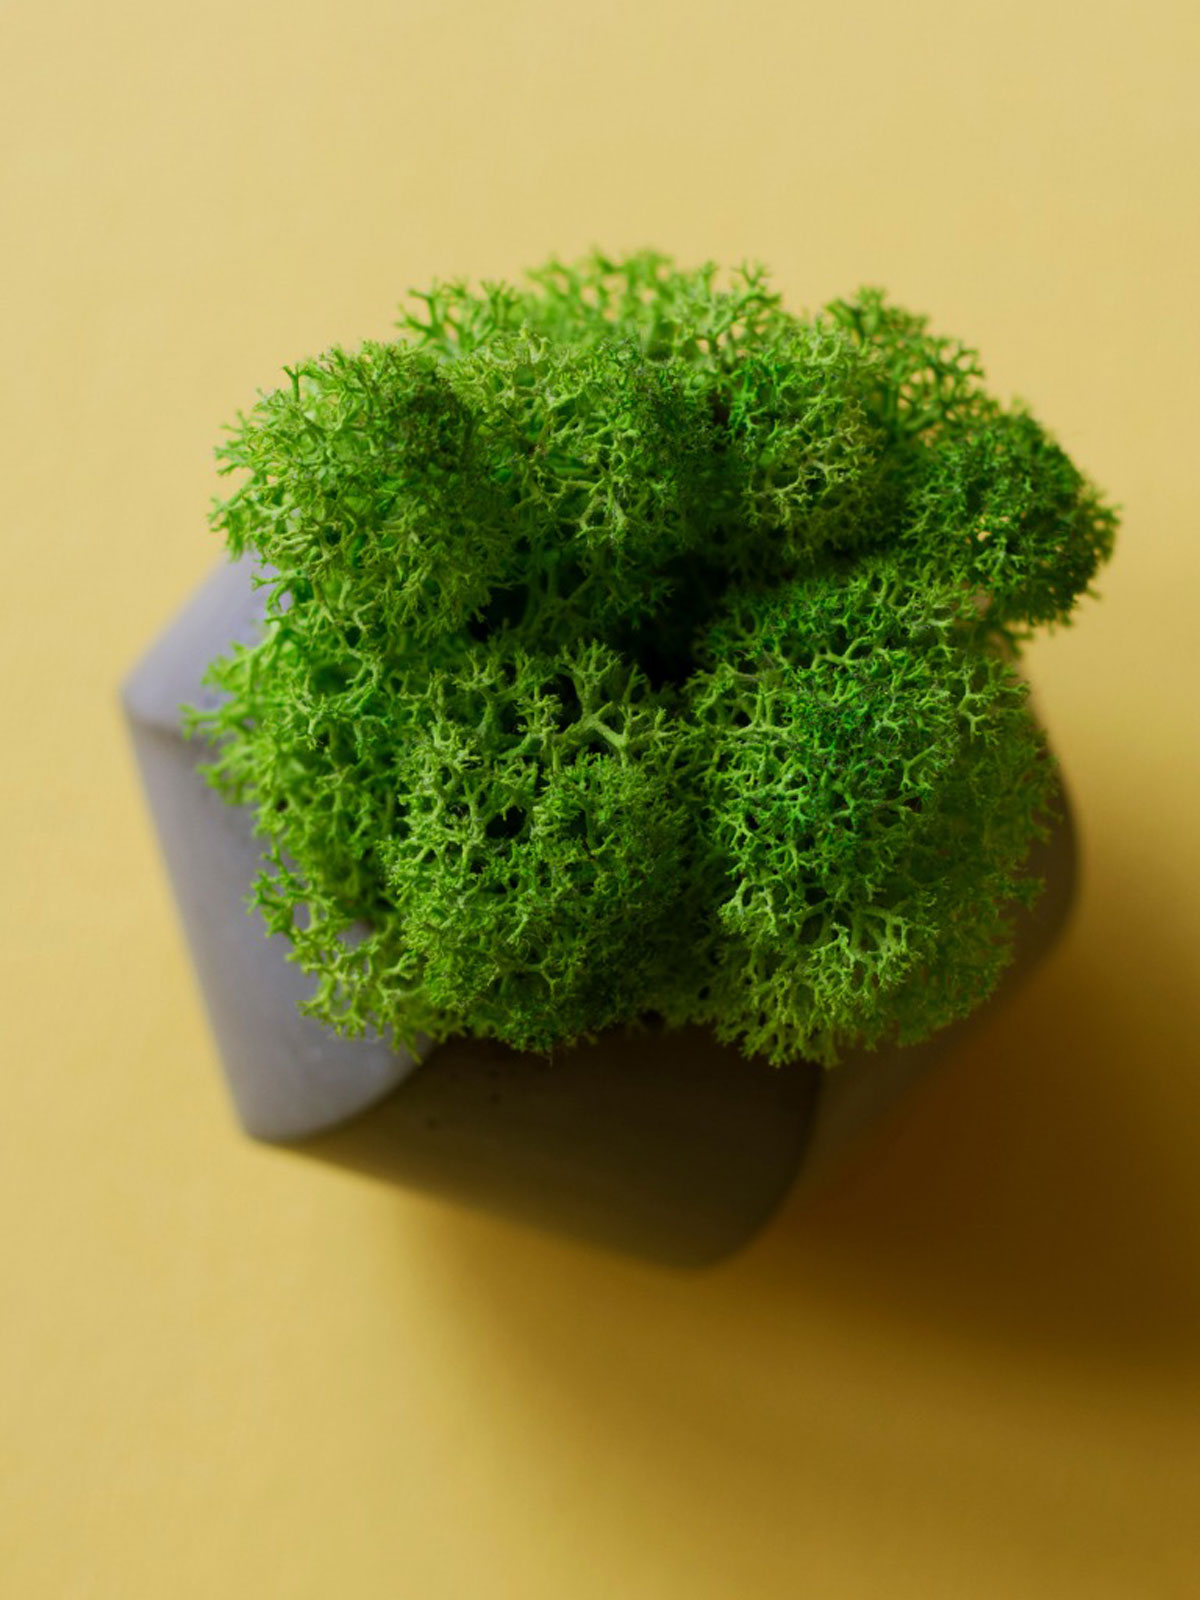 How To Grow Moss Indoors Tips For Creating An Indoor Moss Garden